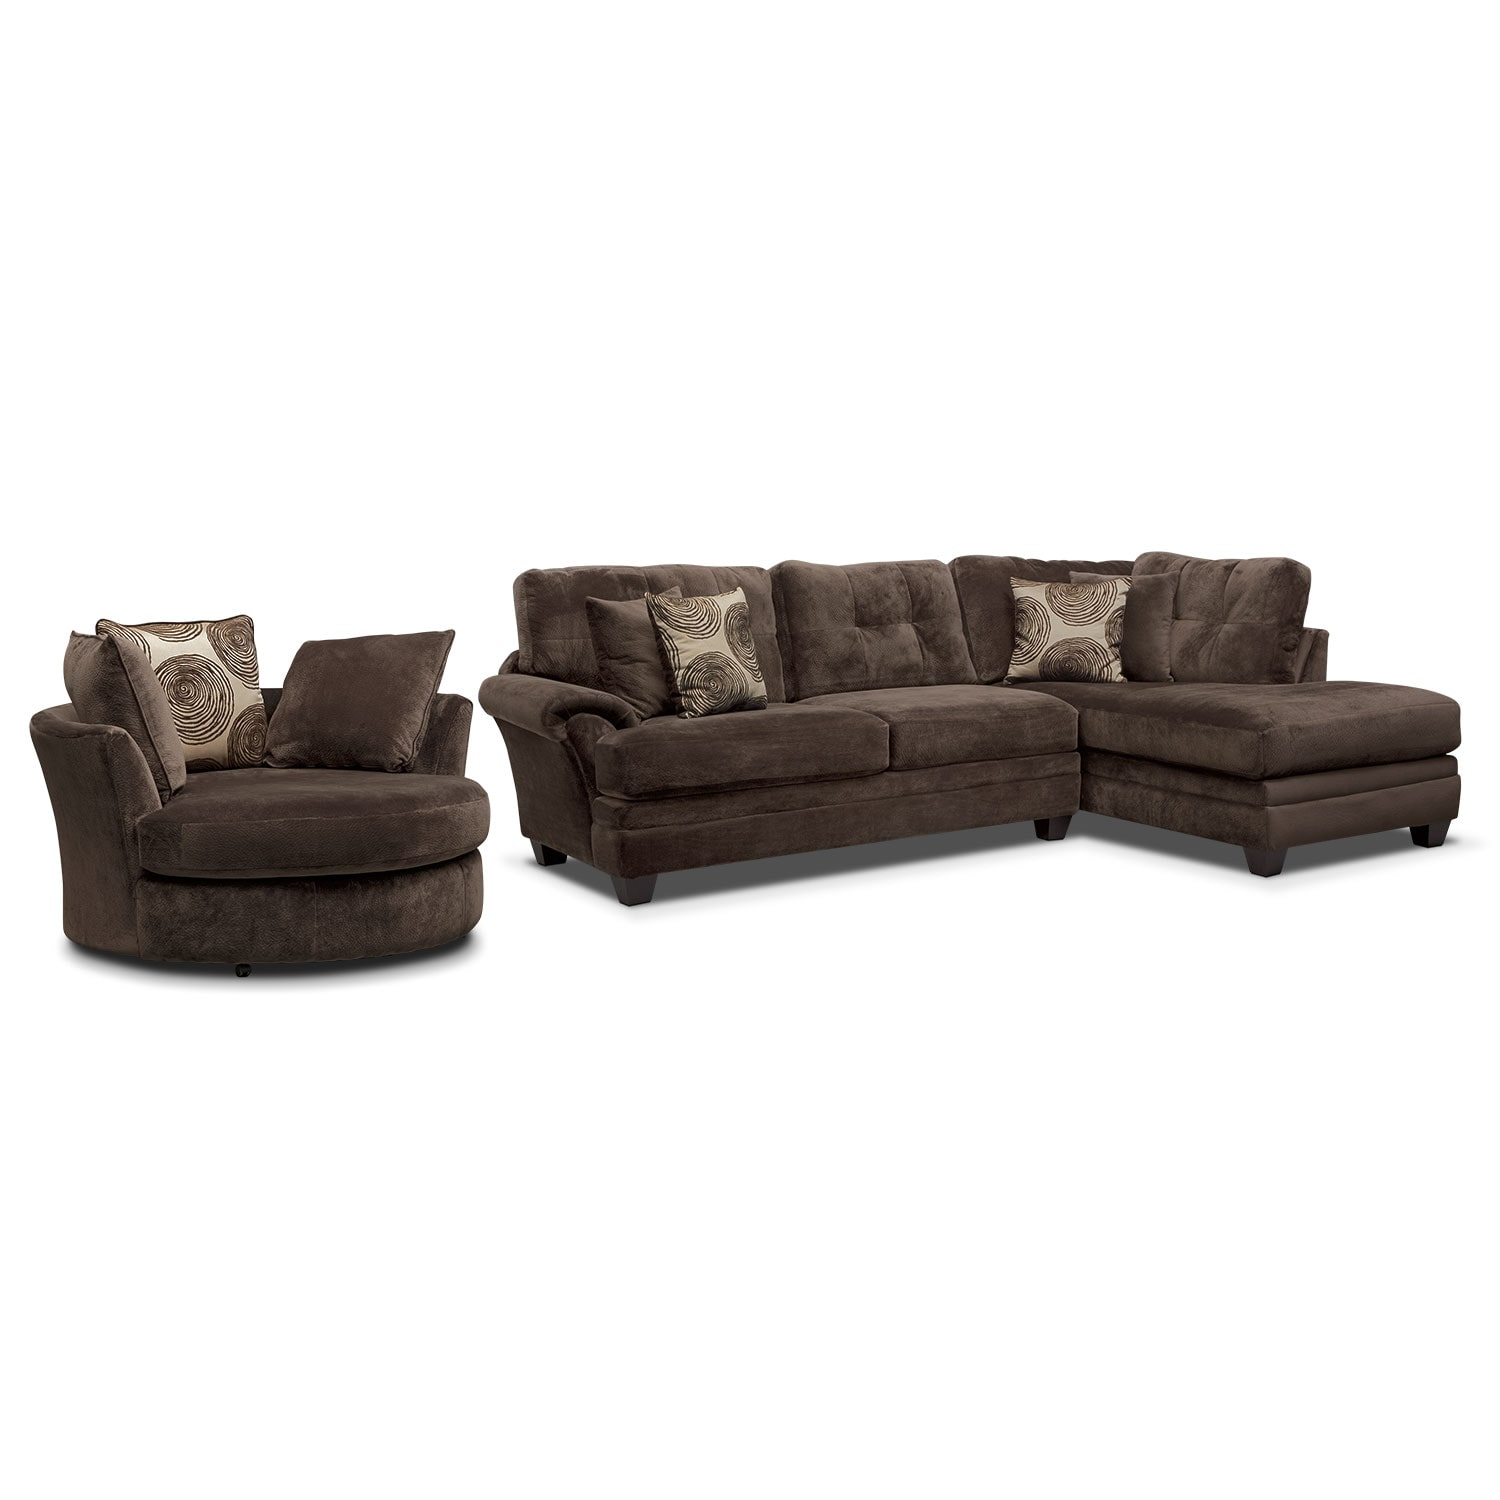 Cordelle 2-Piece Right-Facing Chaise Sectional and Swivel Chair Set - Chocolate